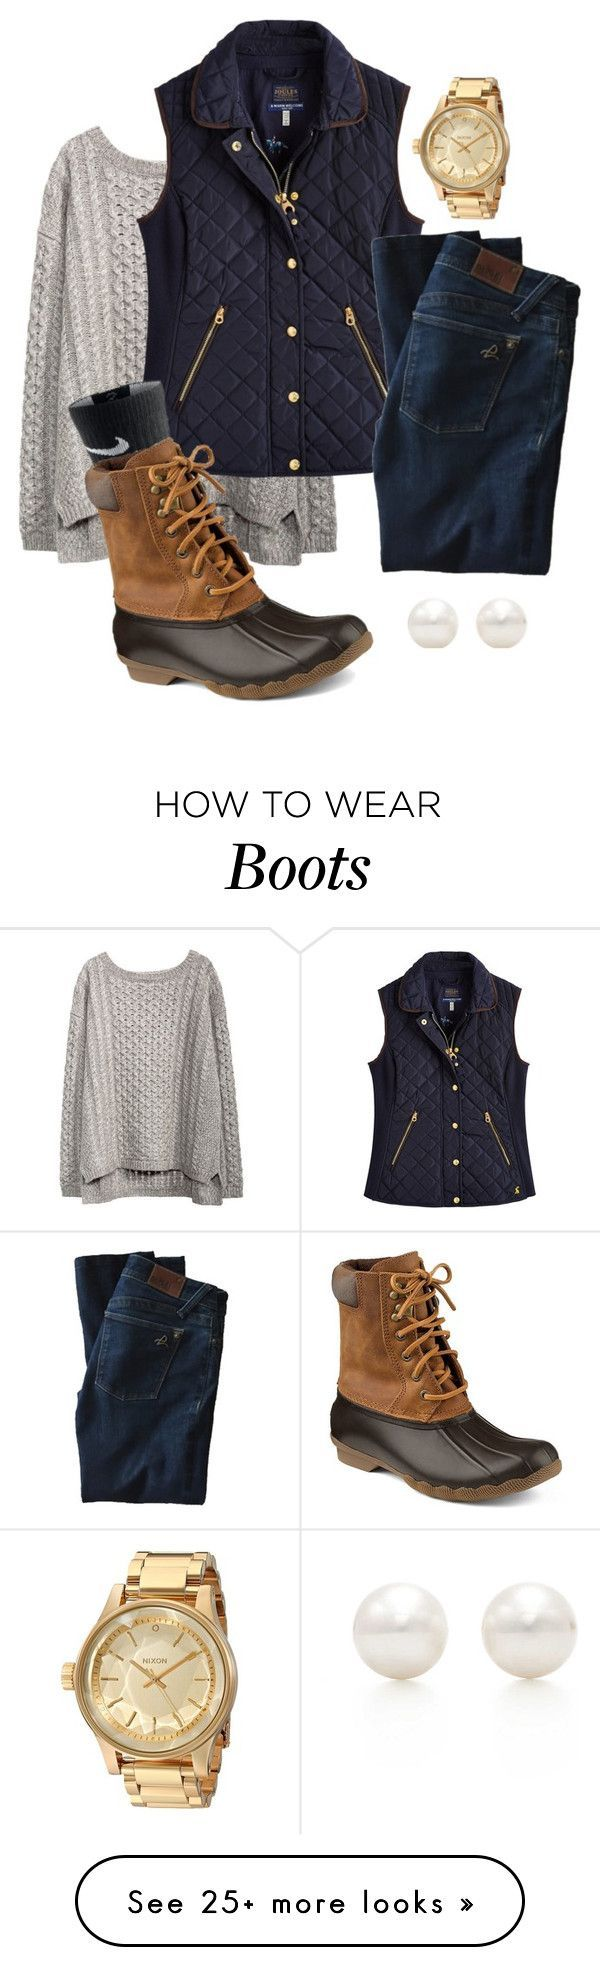 """""""Preppy fall duck boots outfit"""" by libbyp16 on Polyvore featuring moda, Joules, DL1961 Premium Denim, NIKE, Sperry Top-Sider, Nixon y Tiffany & Co."""